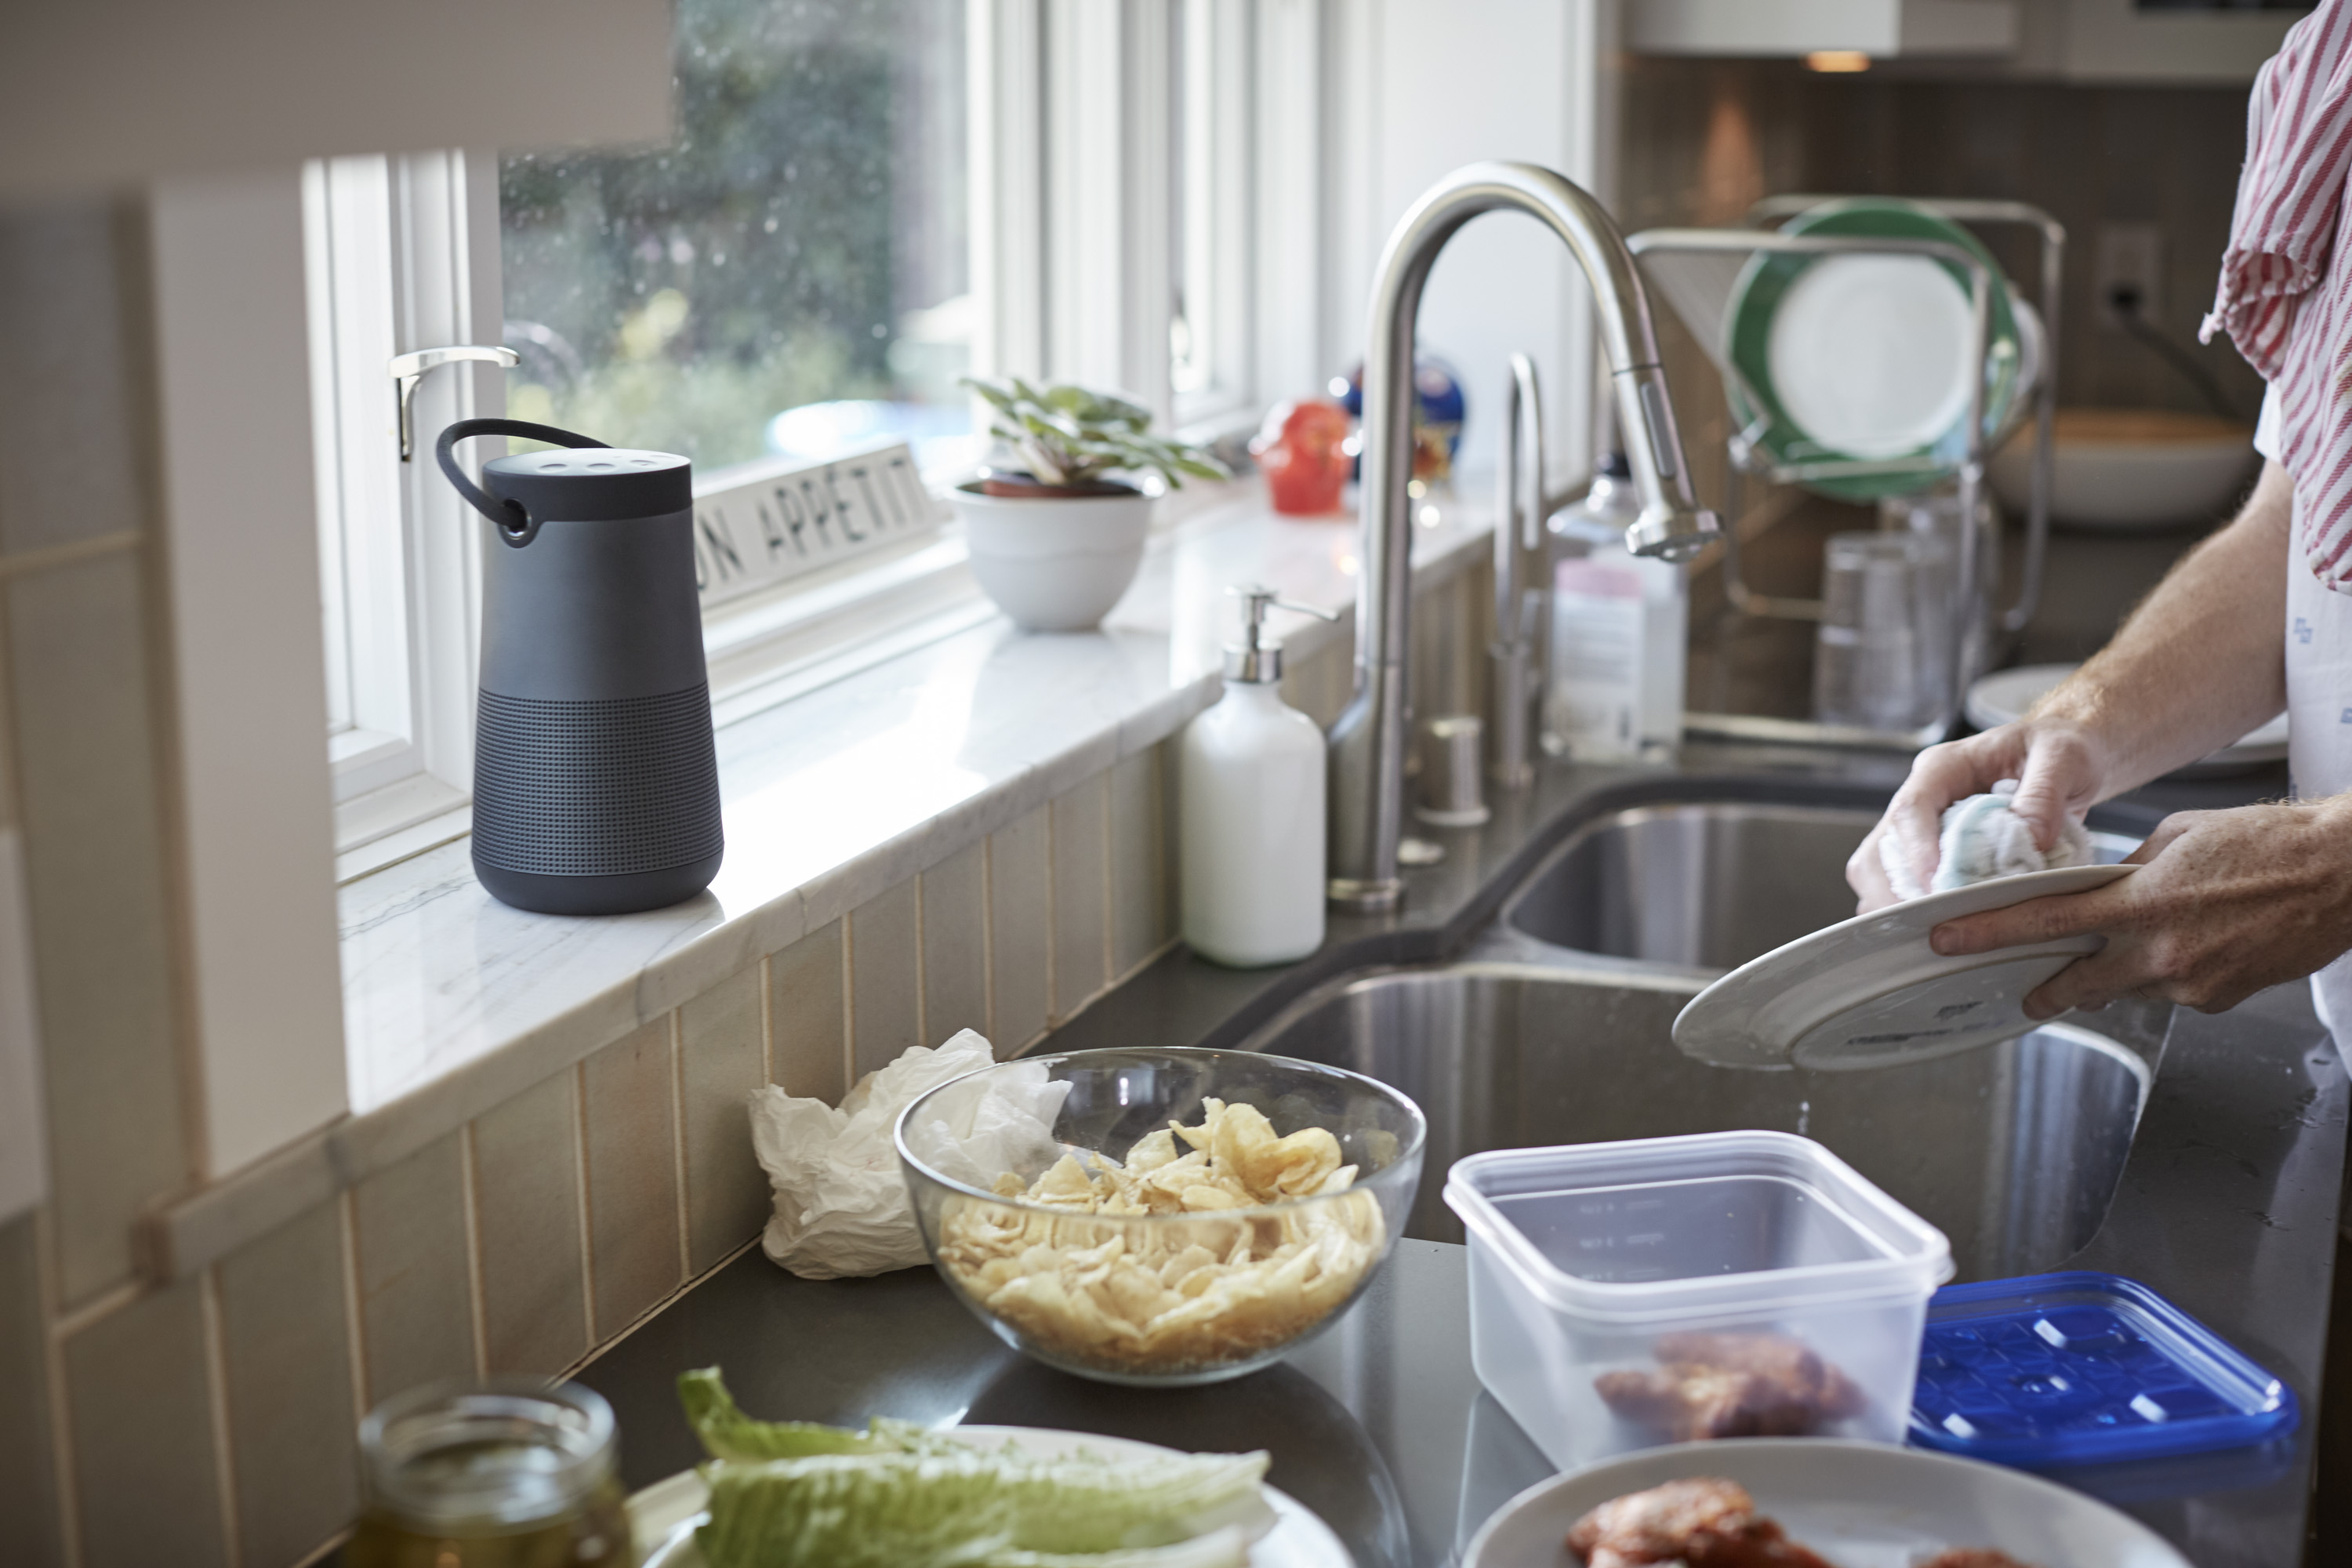 The Main Differences Between The Two Speakers Are Size And Battery Life.  The Revolve Measures Around 6 Inches Tall; The Revolve+ Is 7.2 Inches With  A Larger ...